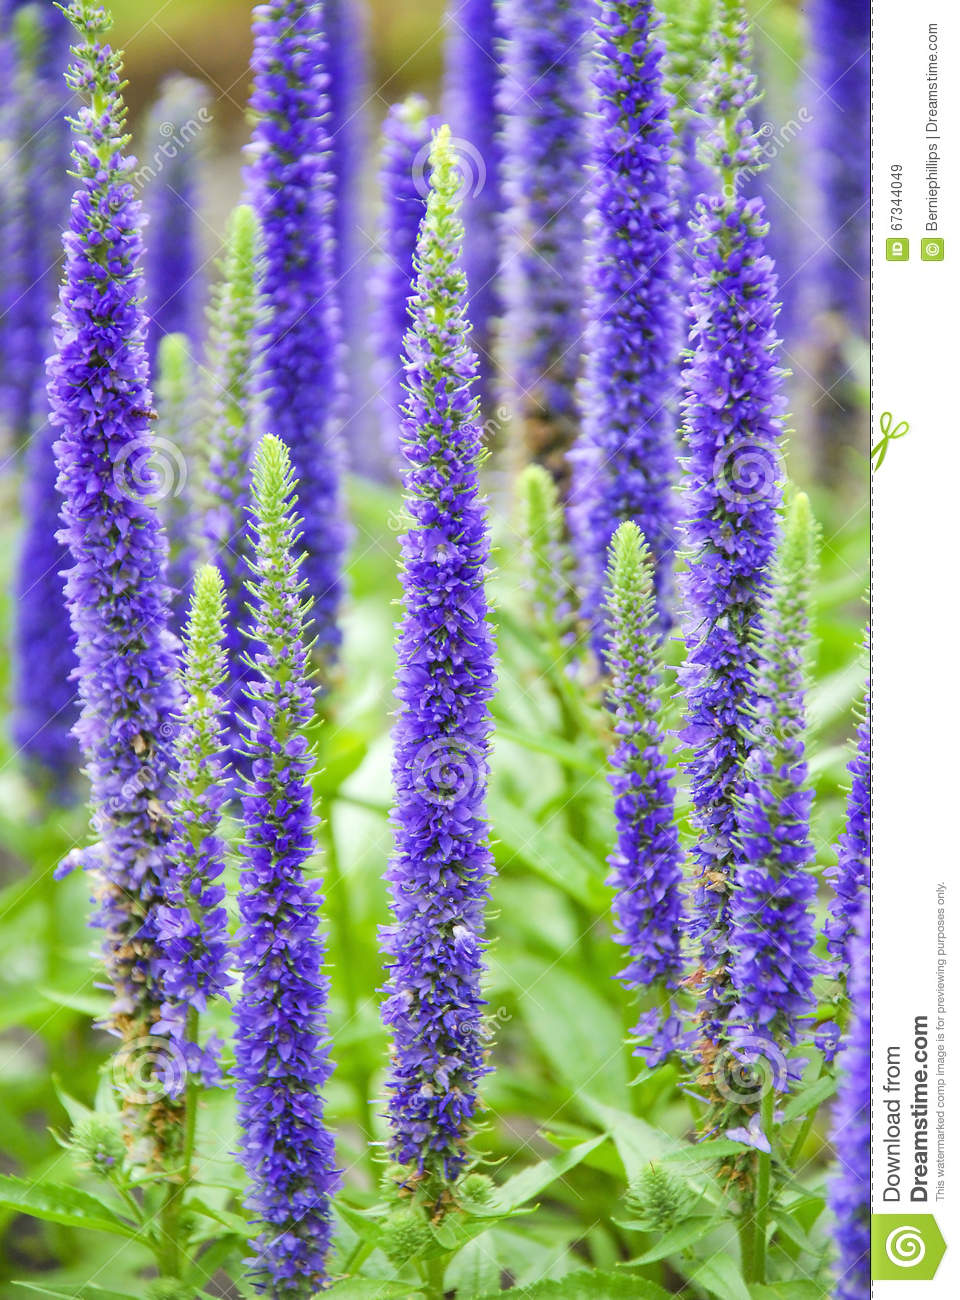 Purple Spring Flowers Stock Image Image Of Nepeta Blooming 67344049